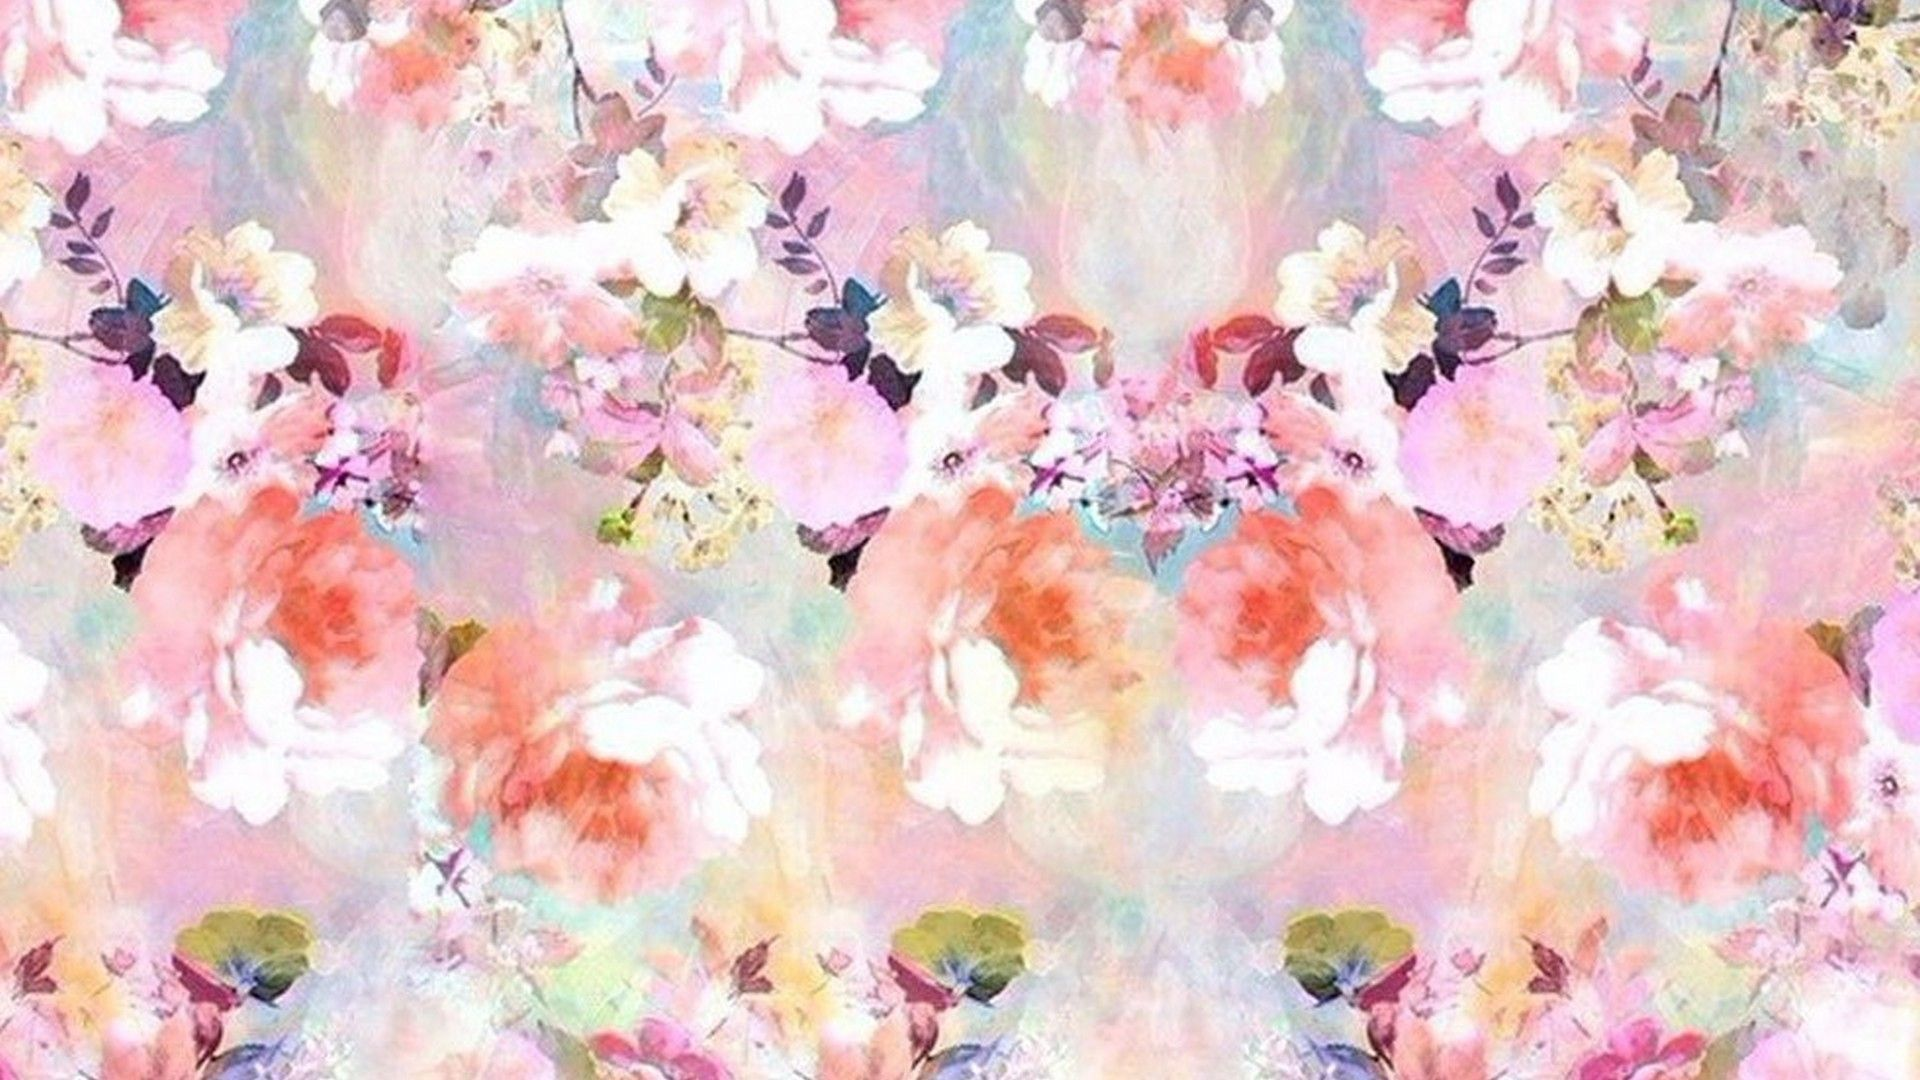 Pin By Flip Wallpapers Desktop On Art Watercolor Flower Background Hd Cute Wallpapers Rose Gold Backgrounds